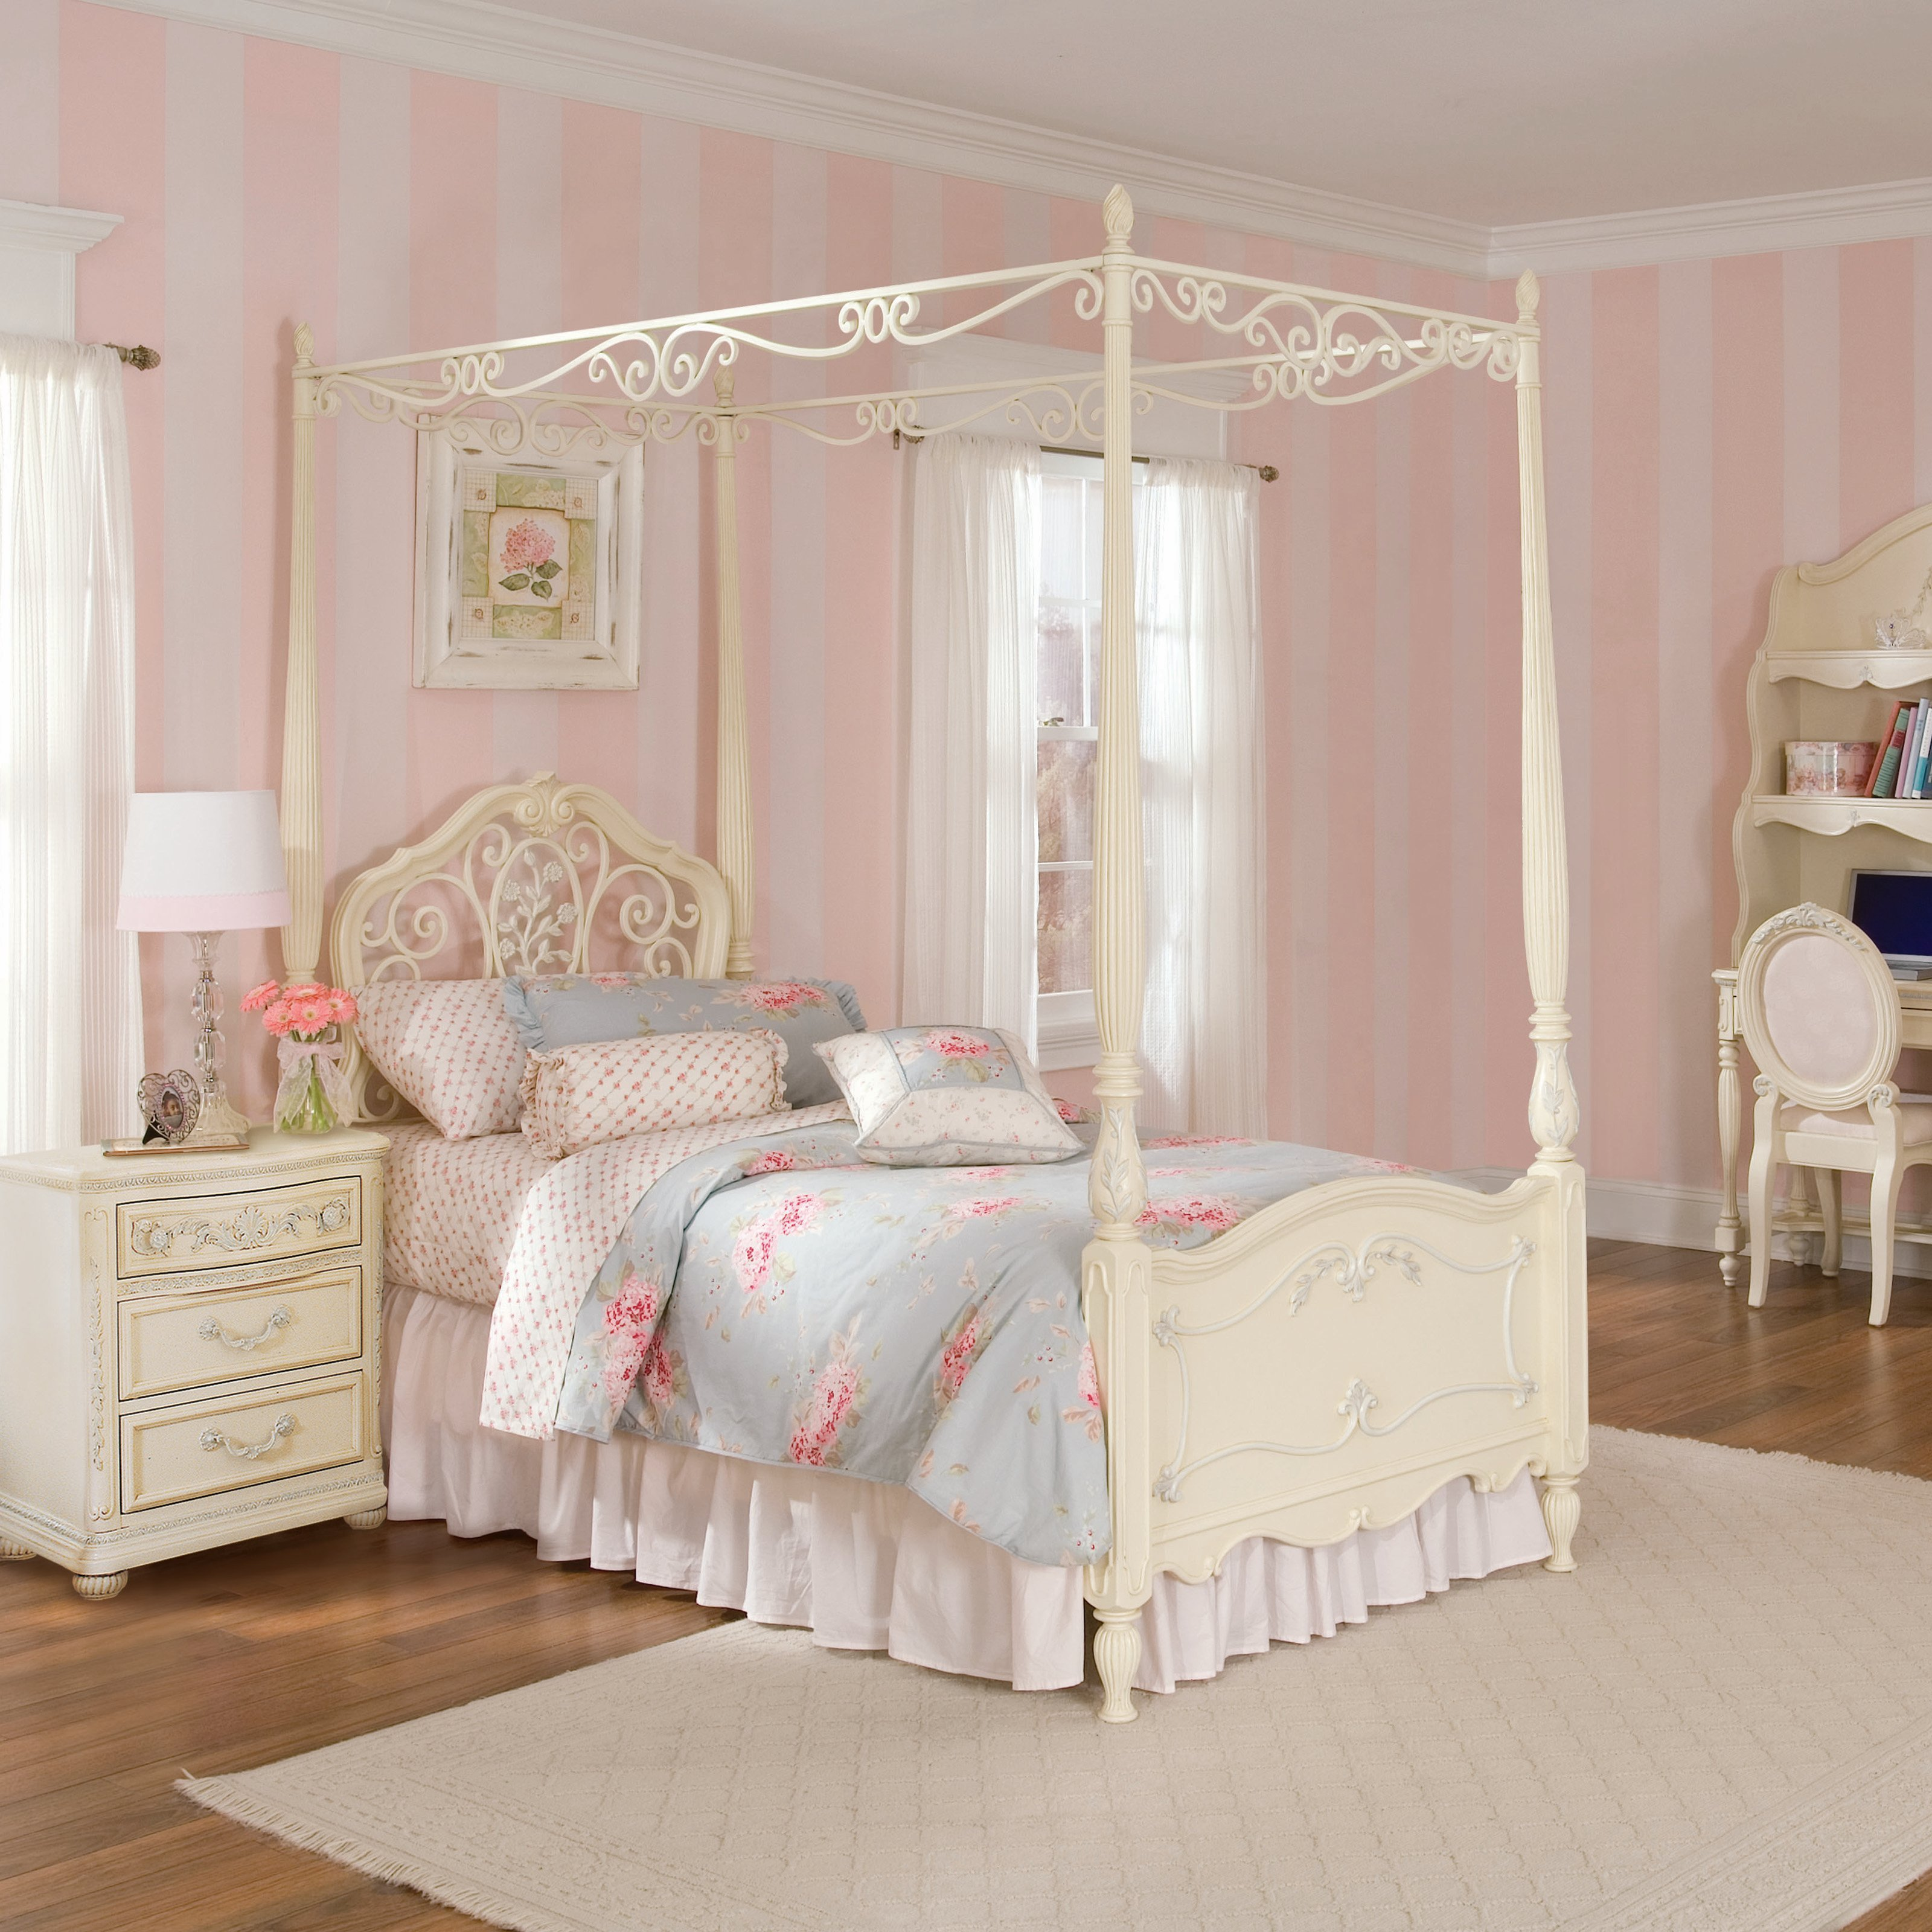 Best How To Make Girls Canopy Bed In Princess Theme Midcityeast With Pictures